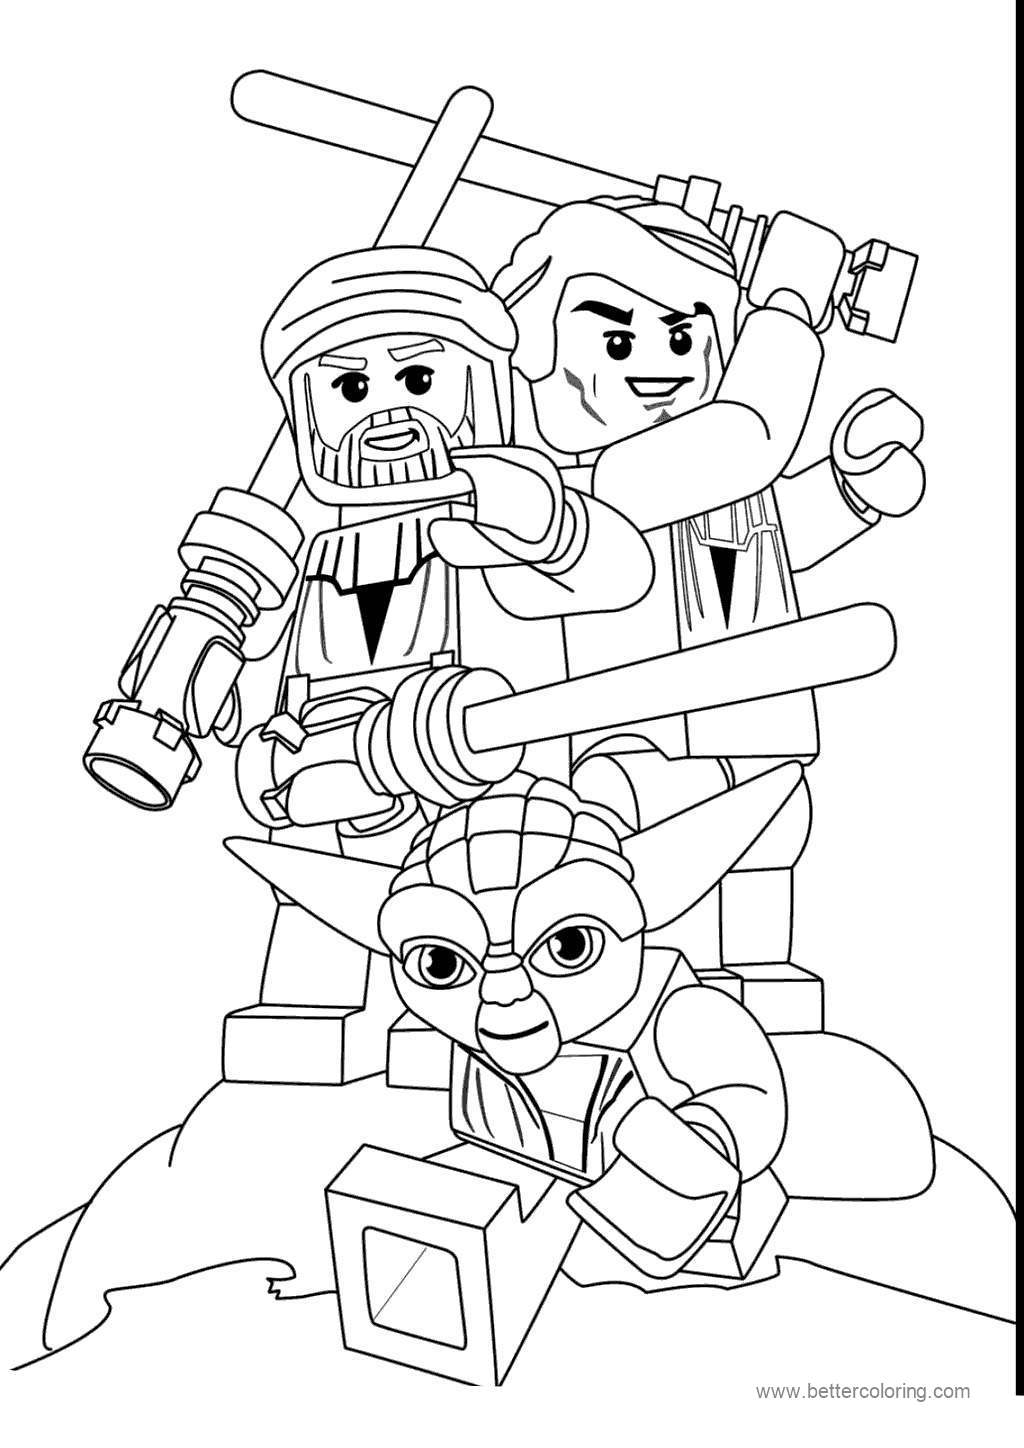 lego character coloring pages lego movie characters coloring pages at getdrawings free lego pages coloring character